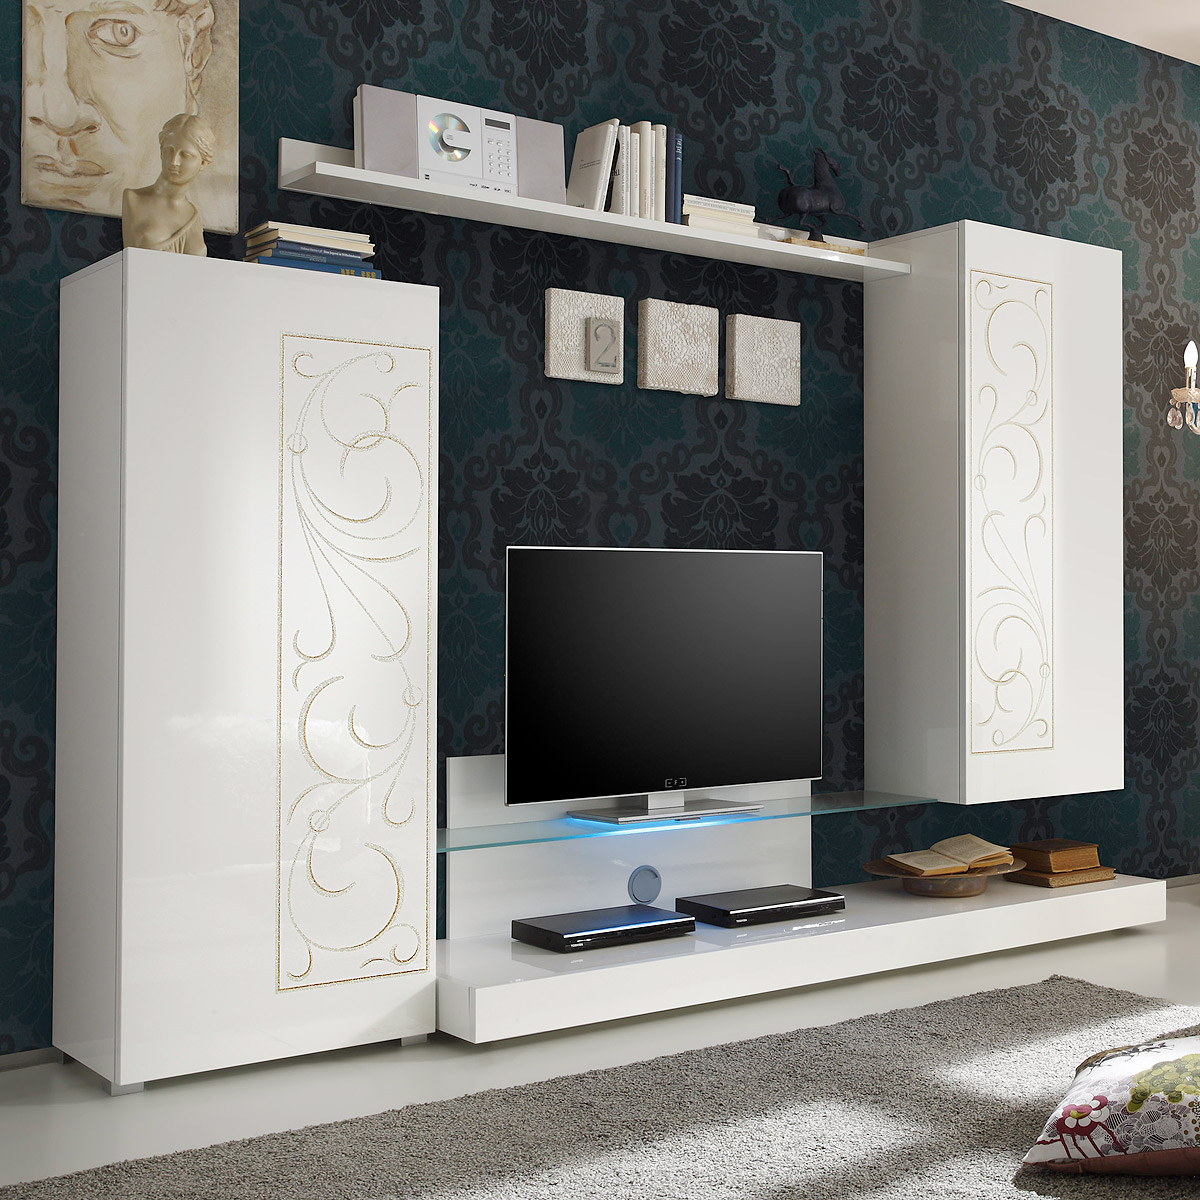 wohnwand padua anbauwand wohnzimmer hochglanz wei lackiert mit siebdruck. Black Bedroom Furniture Sets. Home Design Ideas